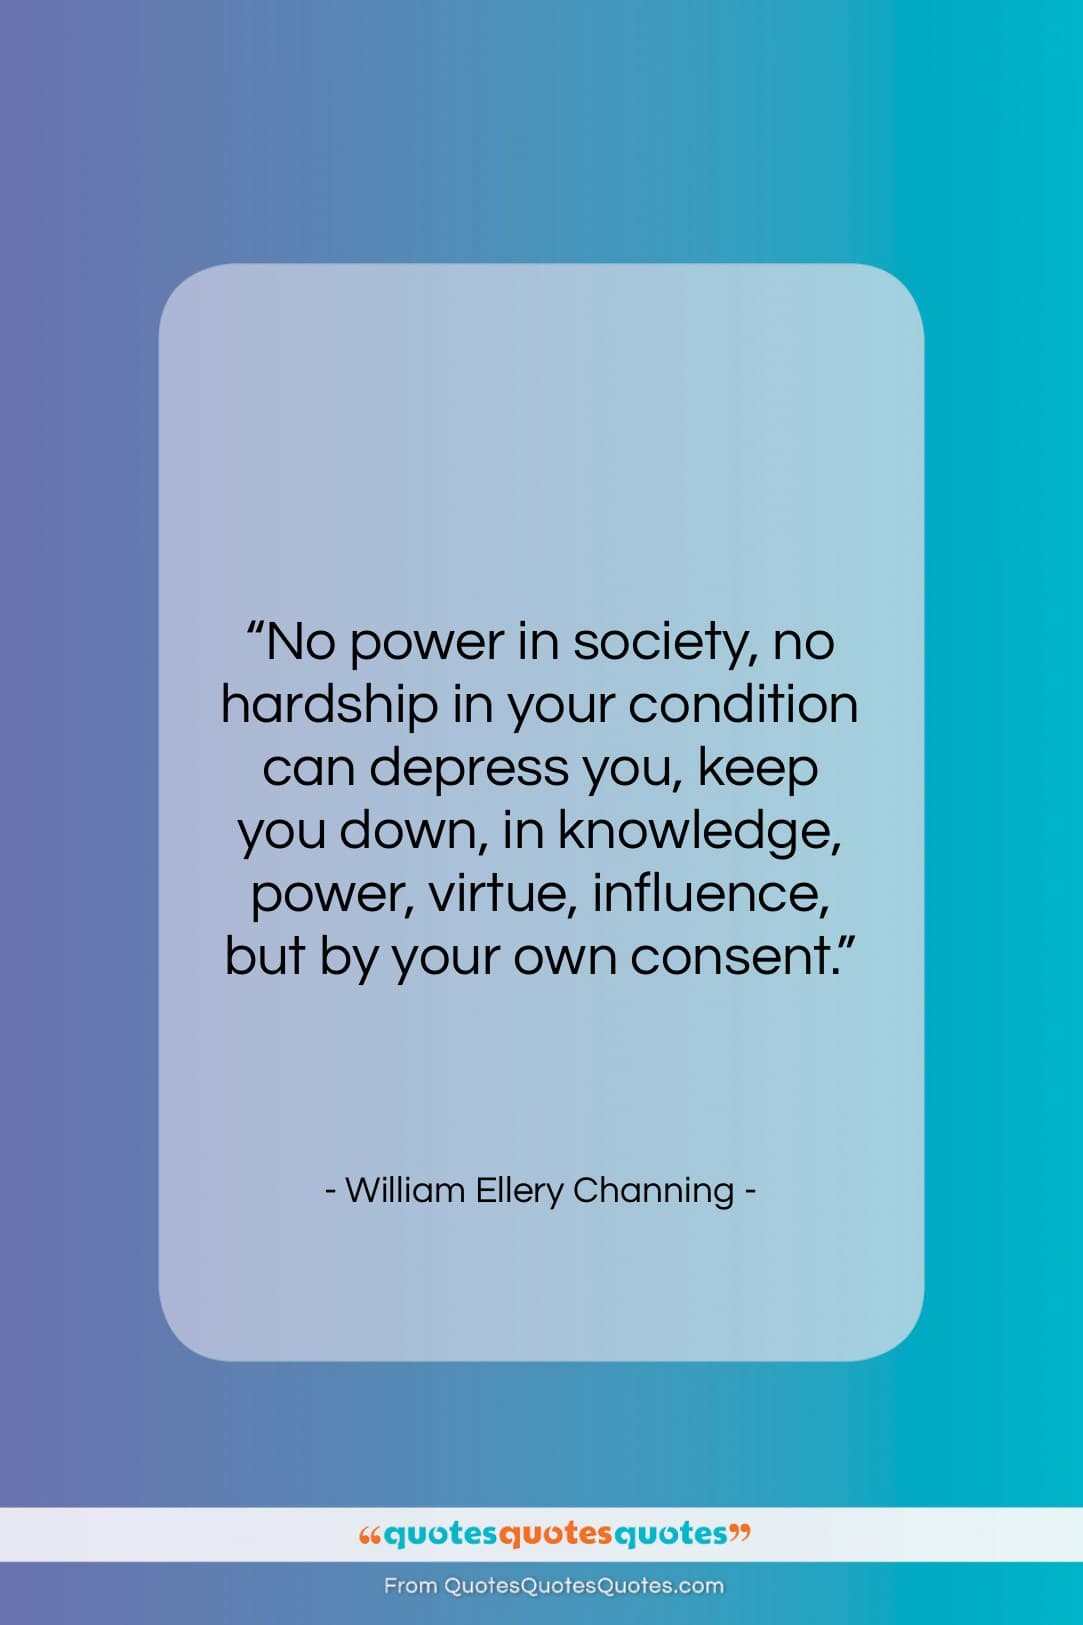 """William Ellery Channing quote: """"No power in society, no hardship in…""""- at QuotesQuotesQuotes.com"""